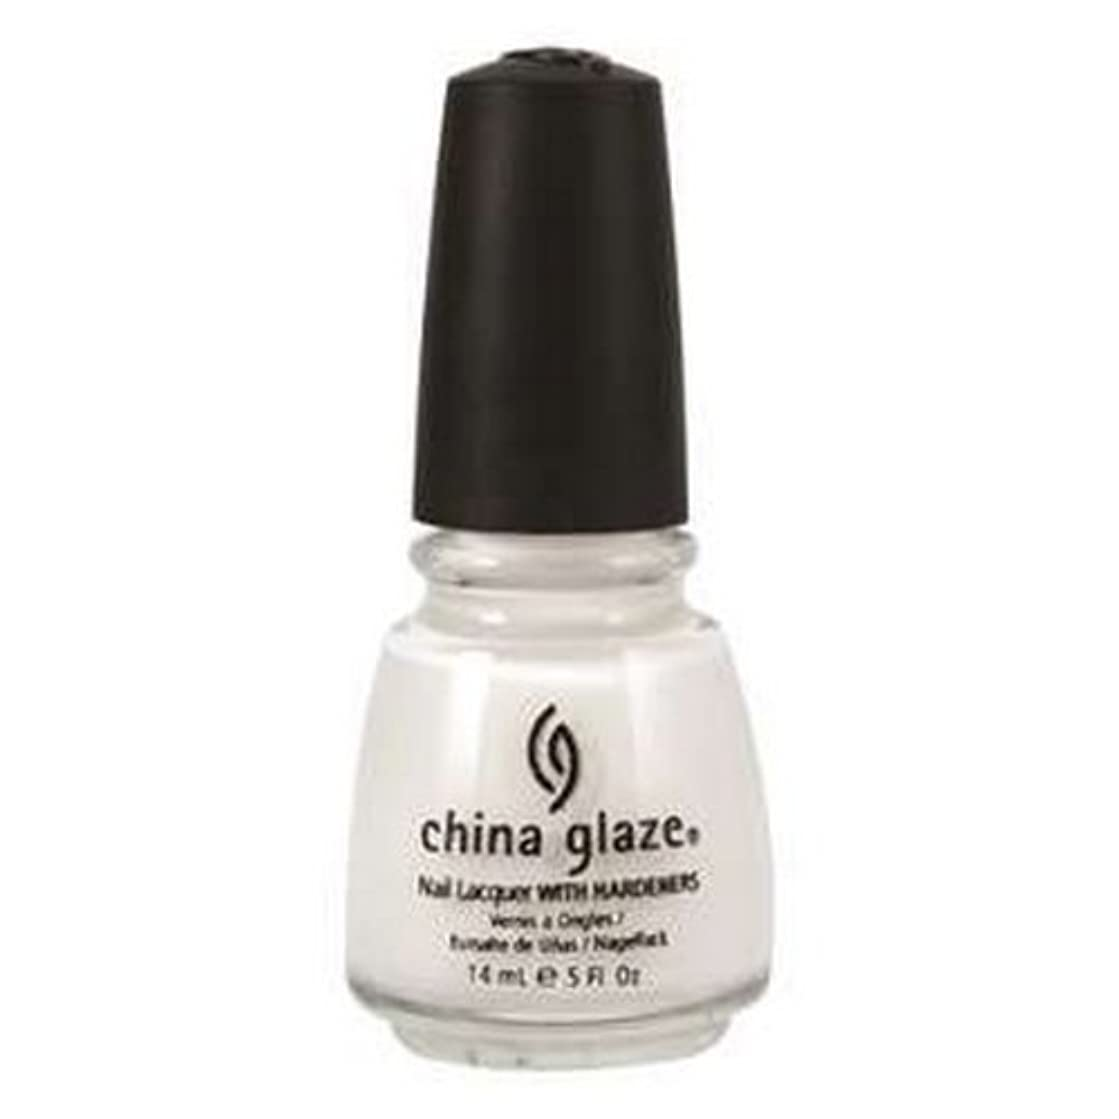 正確なモデレータ受信機(3 Pack) CHINA GLAZE Nail Lacquer with Nail Hardner 2 - Snow (並行輸入品)